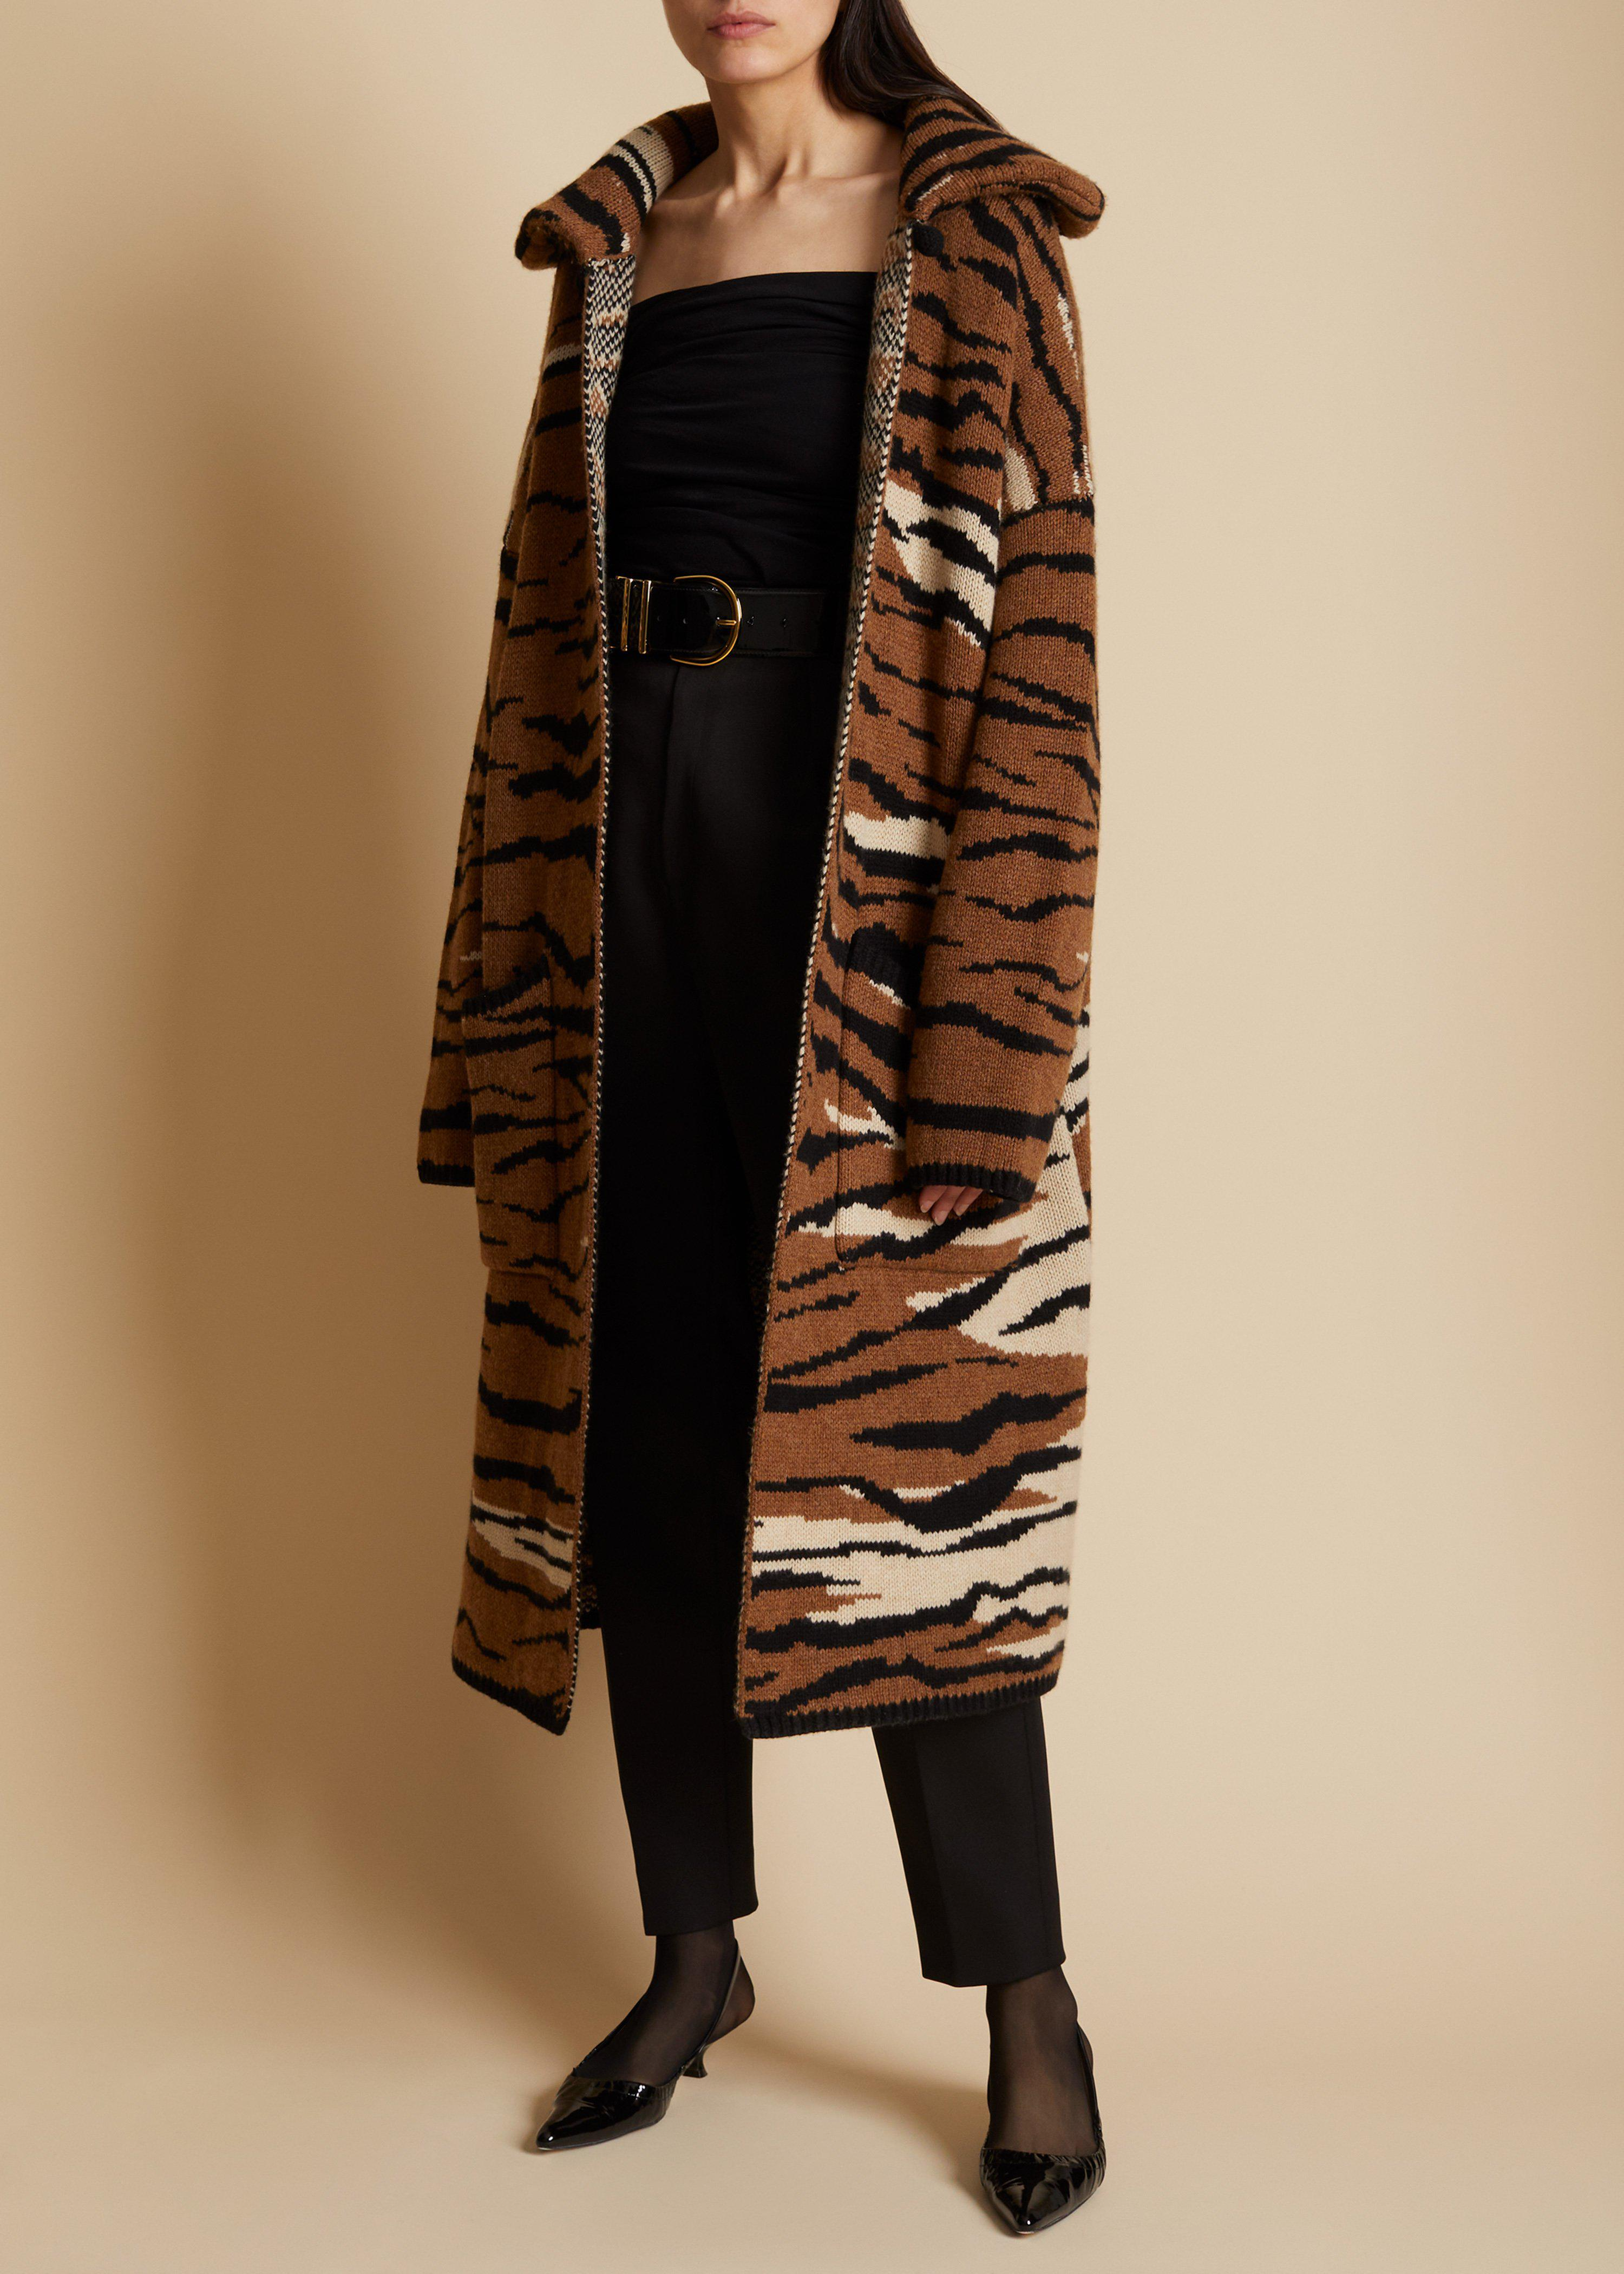 The Fiona Cardigan in Tiger Jacquard